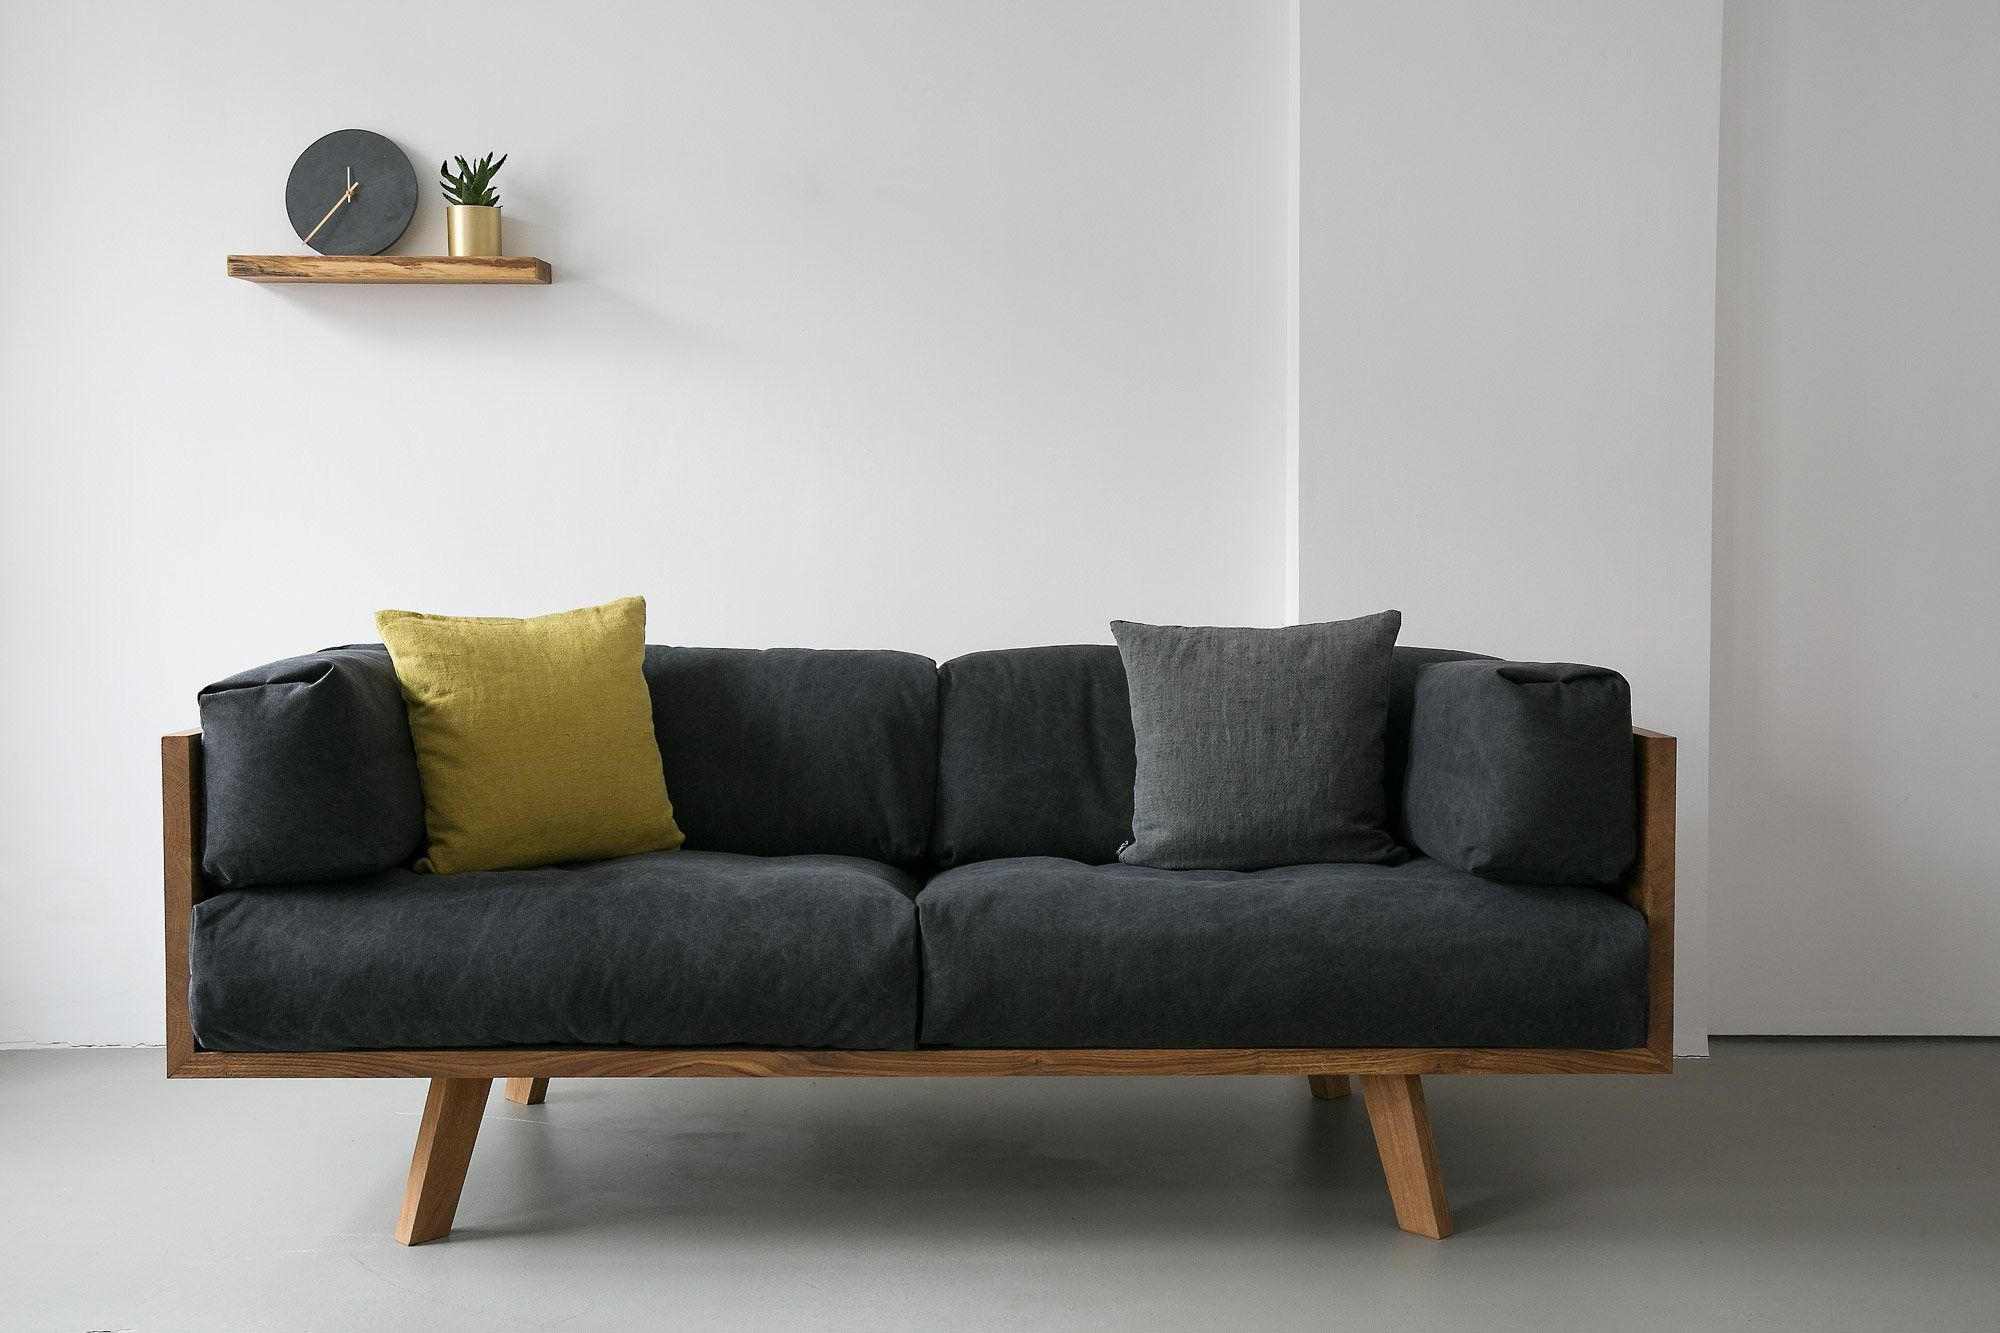 Designer Sofa Occasion Transforming With Multifunctional Furniture